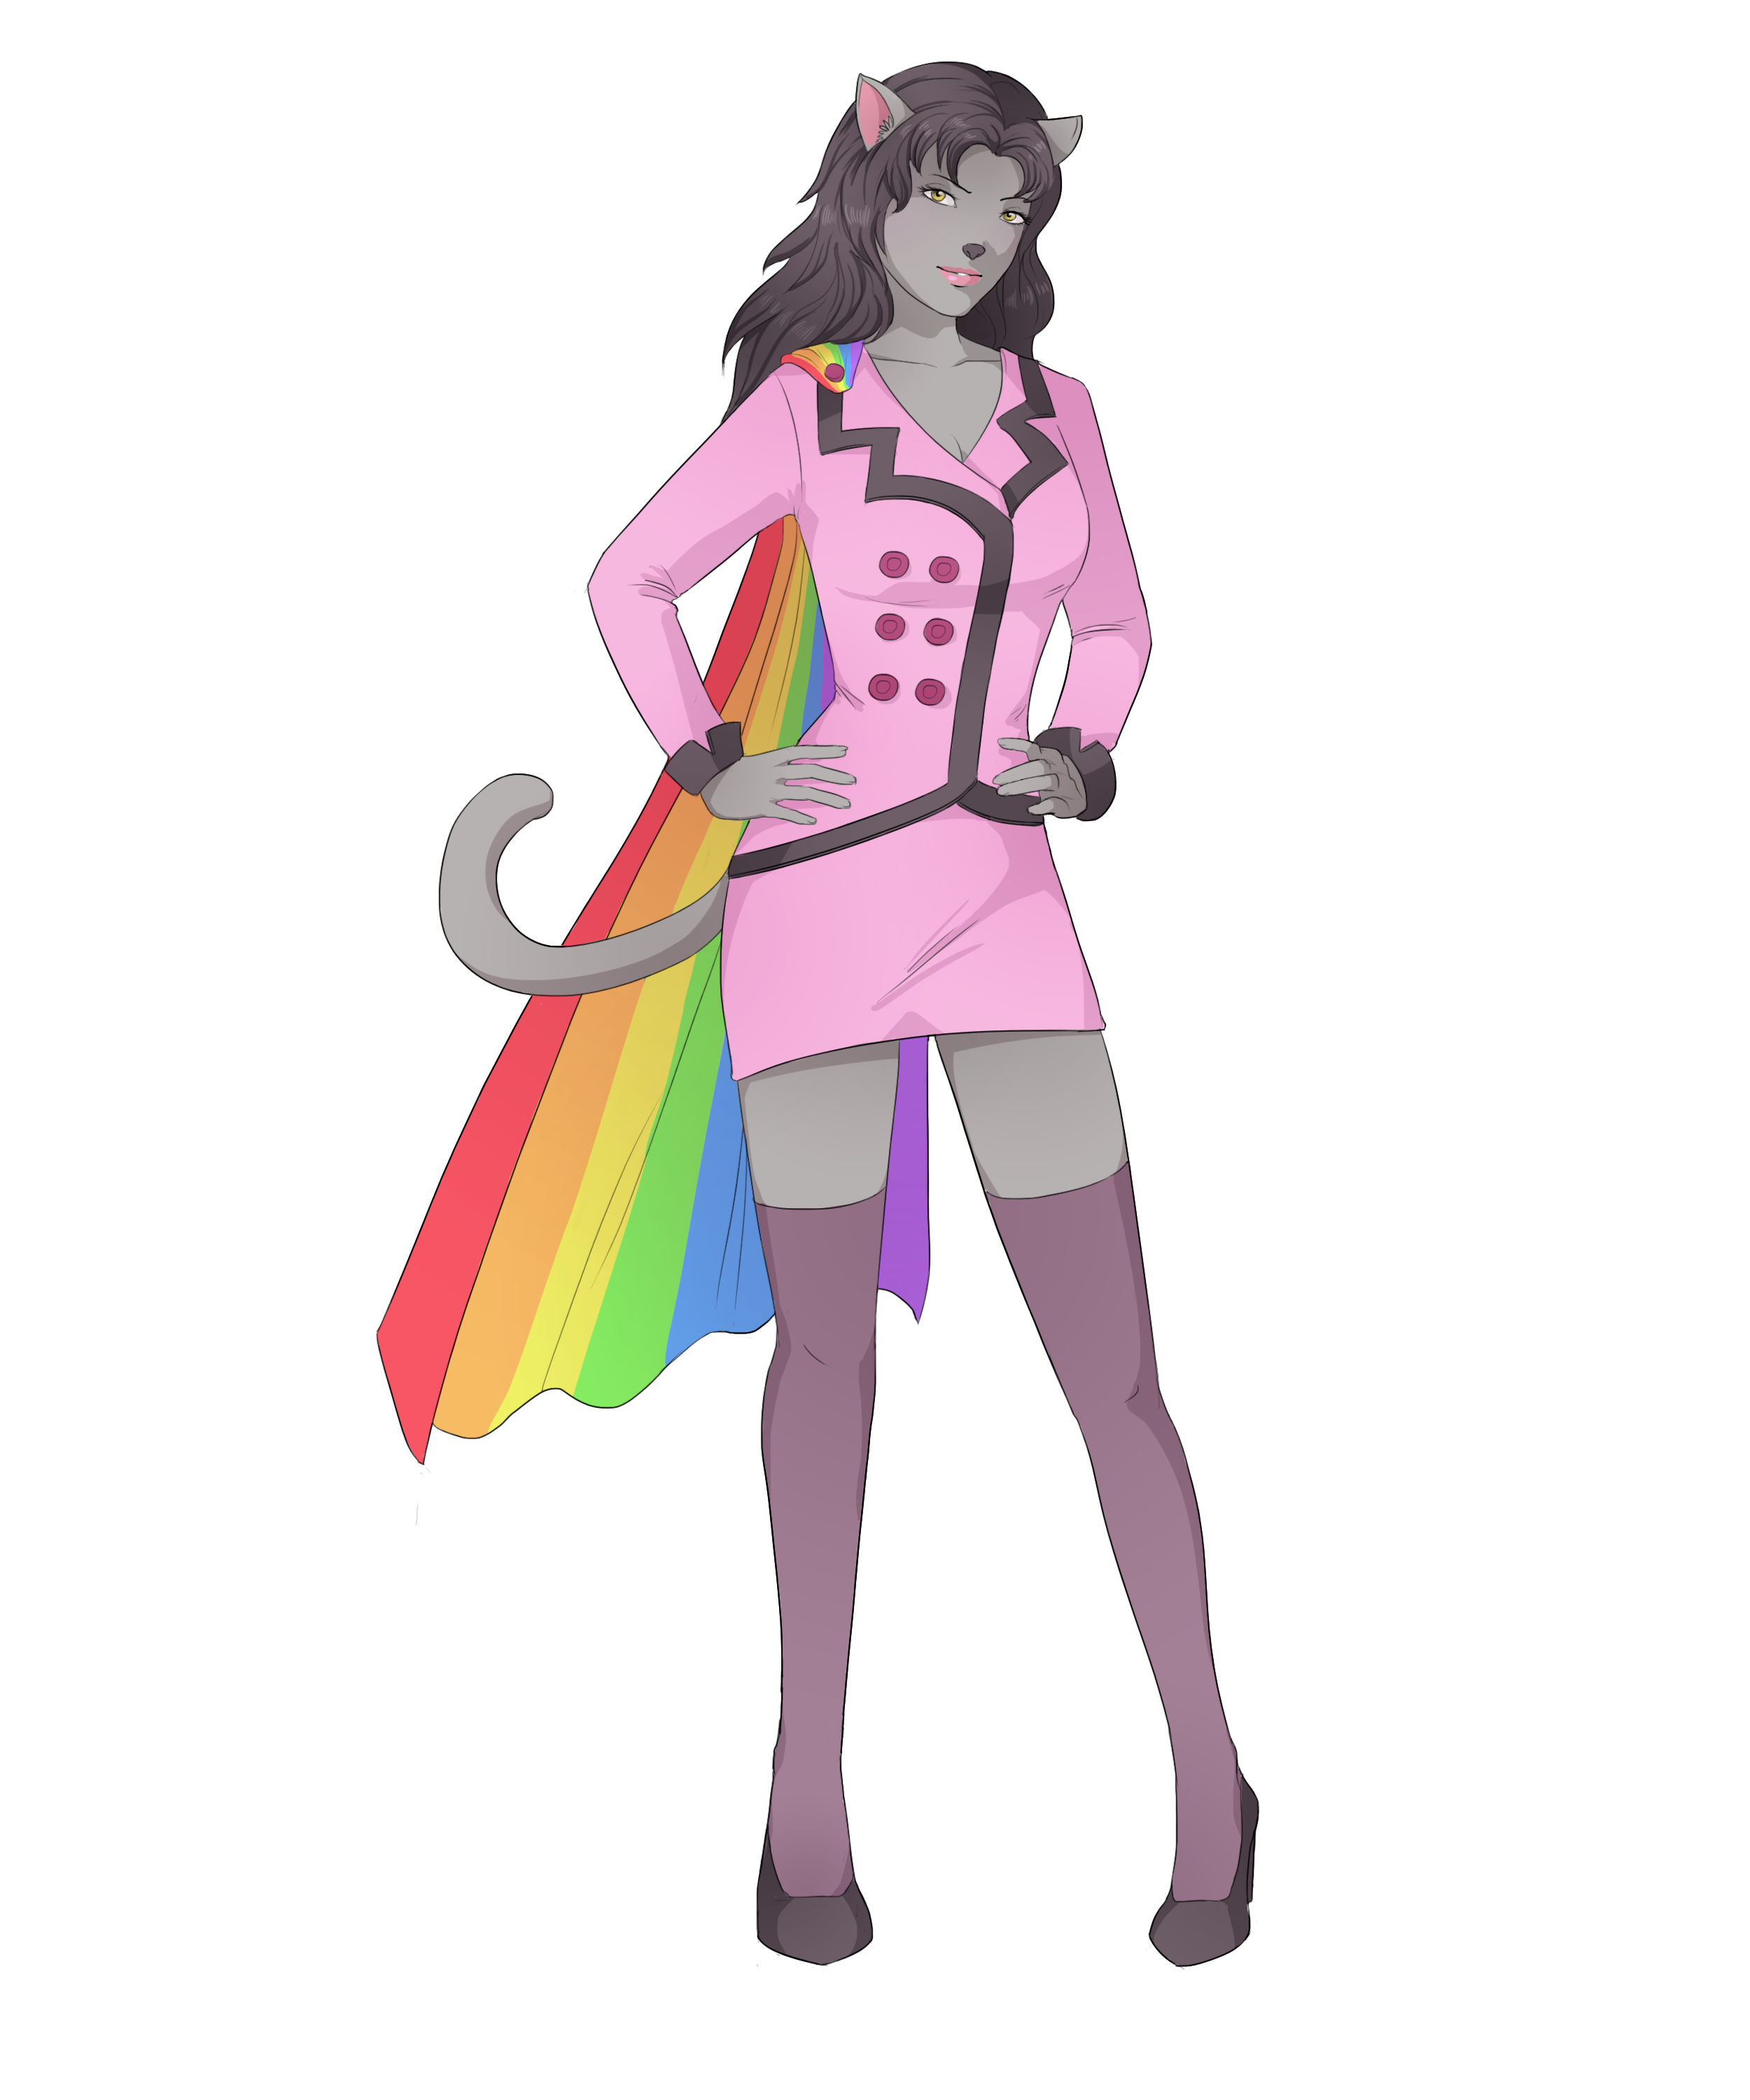 Indie fashion cartoon png. Nyan cat inspired character